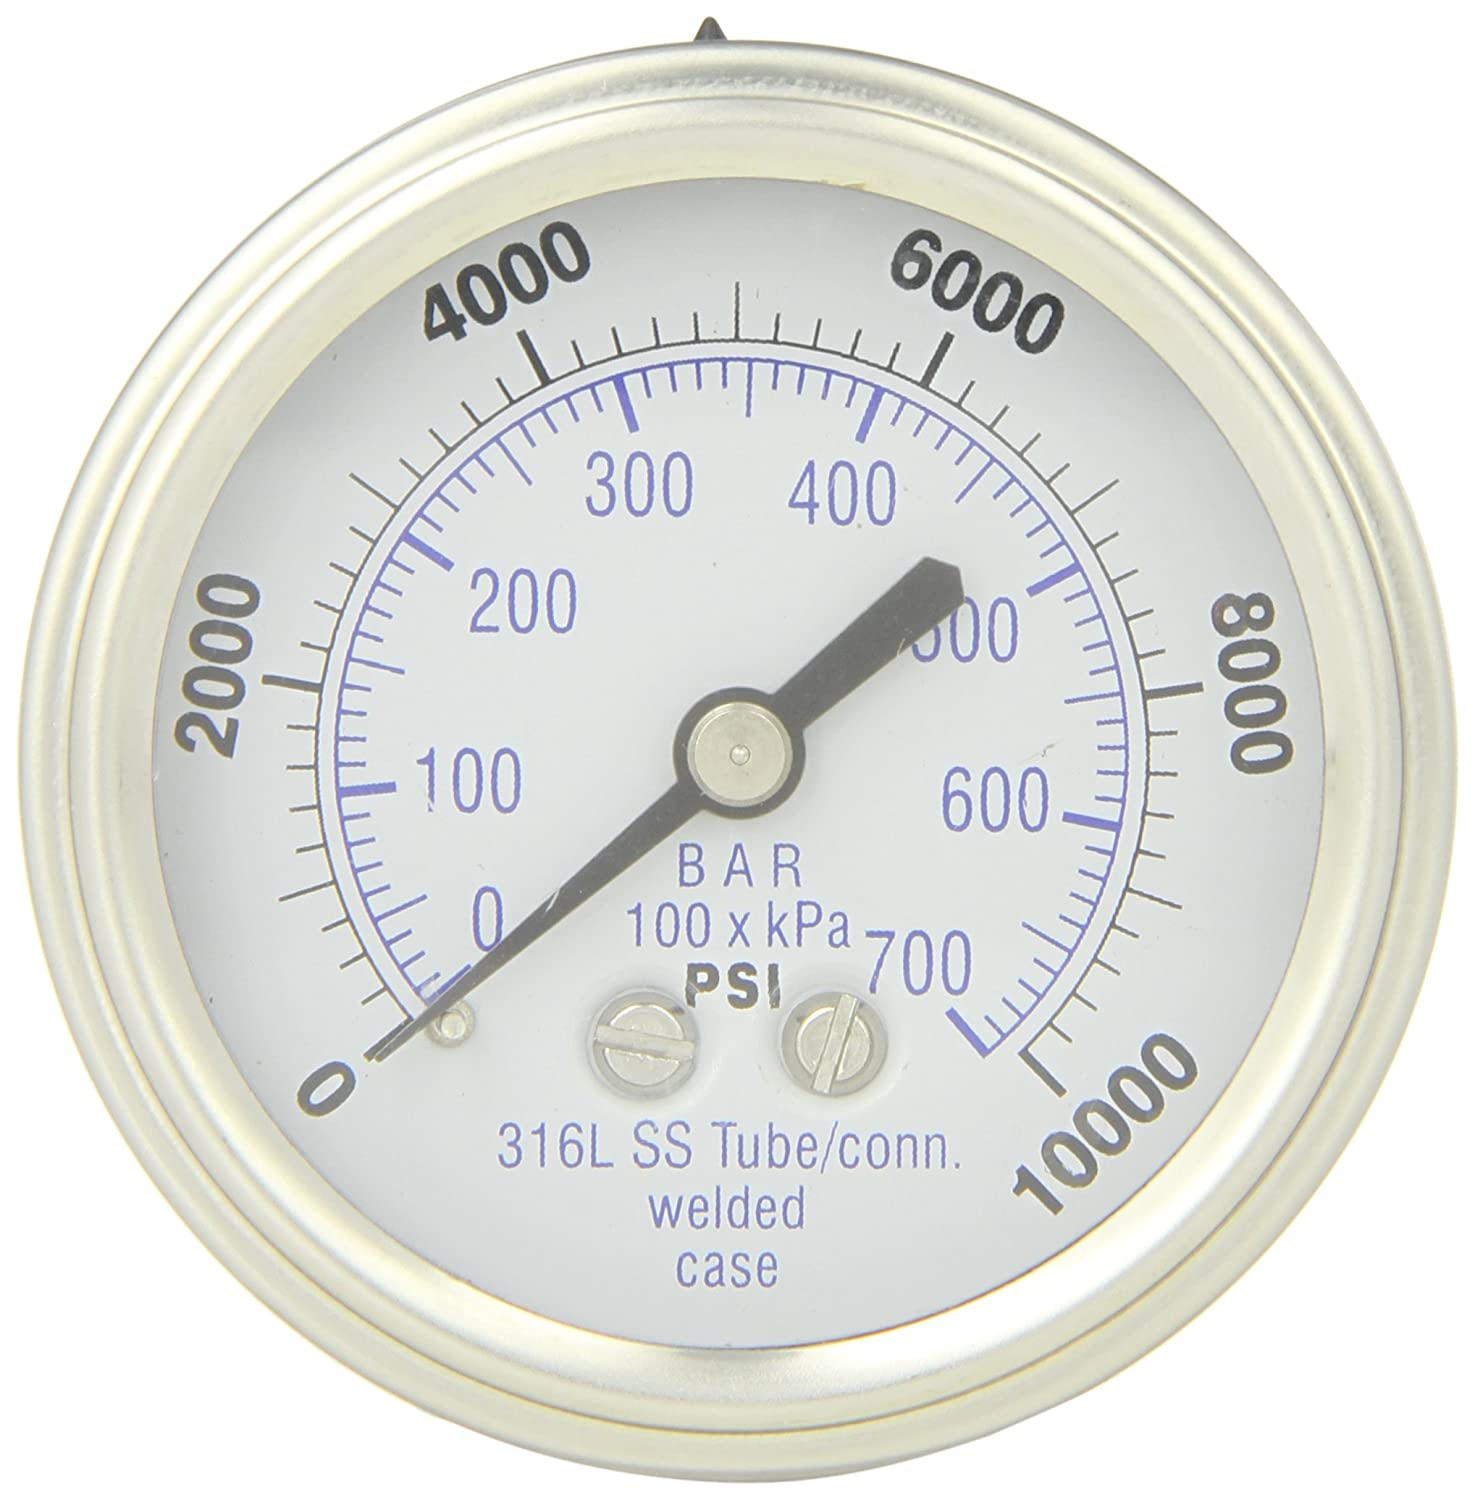 PIC Gauge 302DFW-254U 2.5' Dial, 0/10000 psi Range, 1/4' Male NPT Connection Size, Center Back Mount Dry Pressure Gauge with a Stainless Steel Case and Internals, Stainless Steel Bezel, and Polycarbonate Lens 1/4 Male NPT Connection Size PIC Gauges